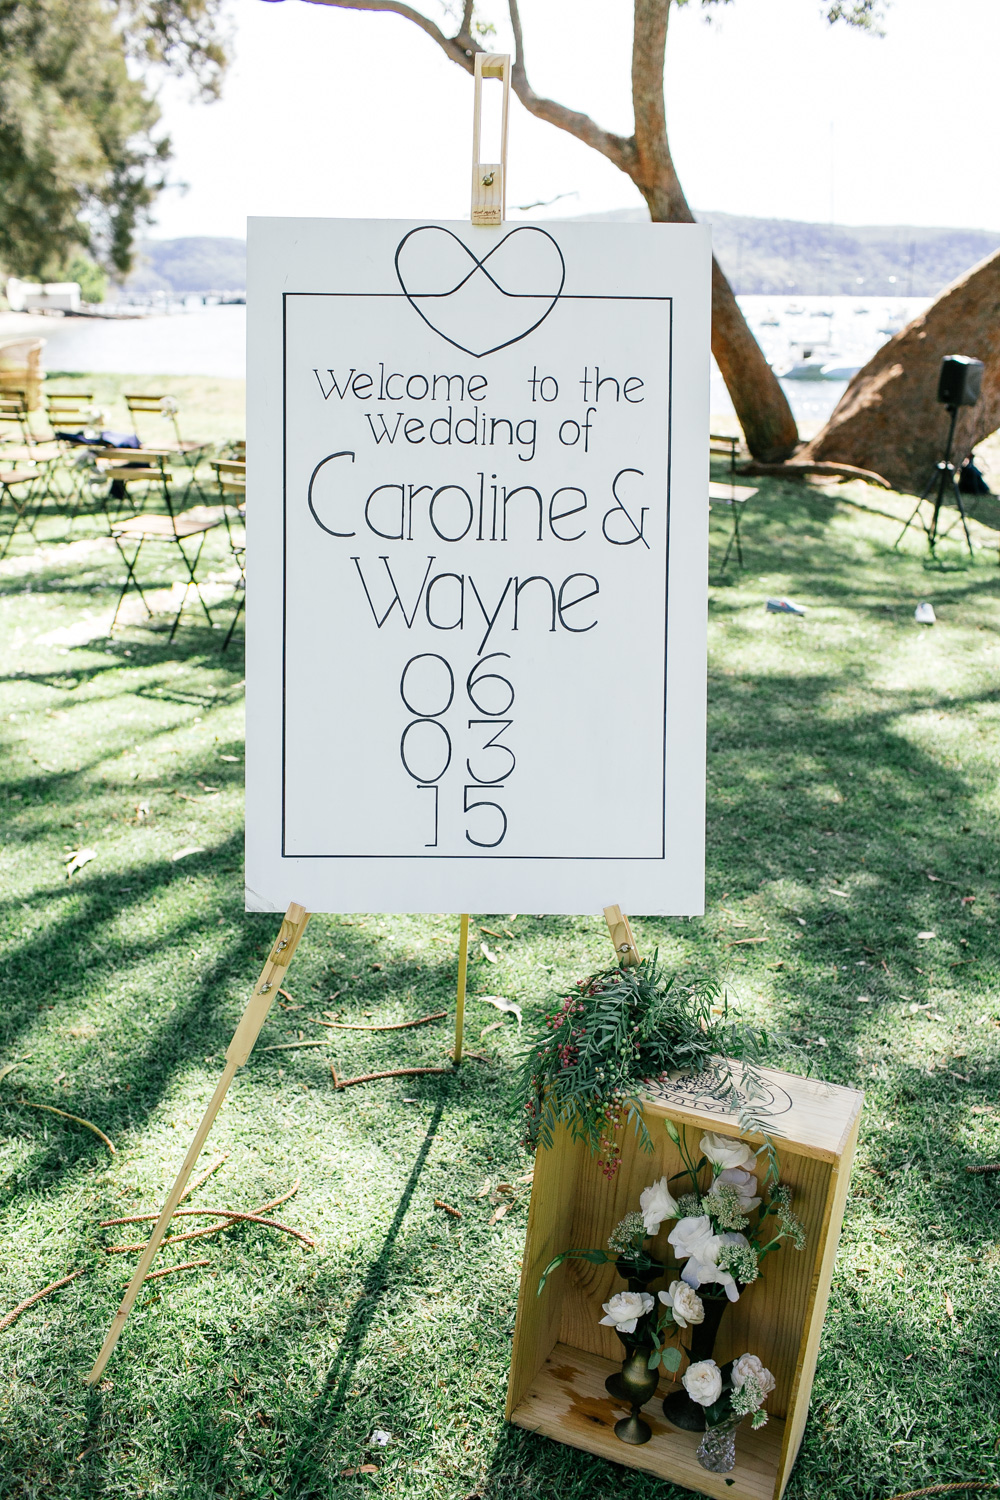 Caroline and Wayne wedding LR-1.jpg